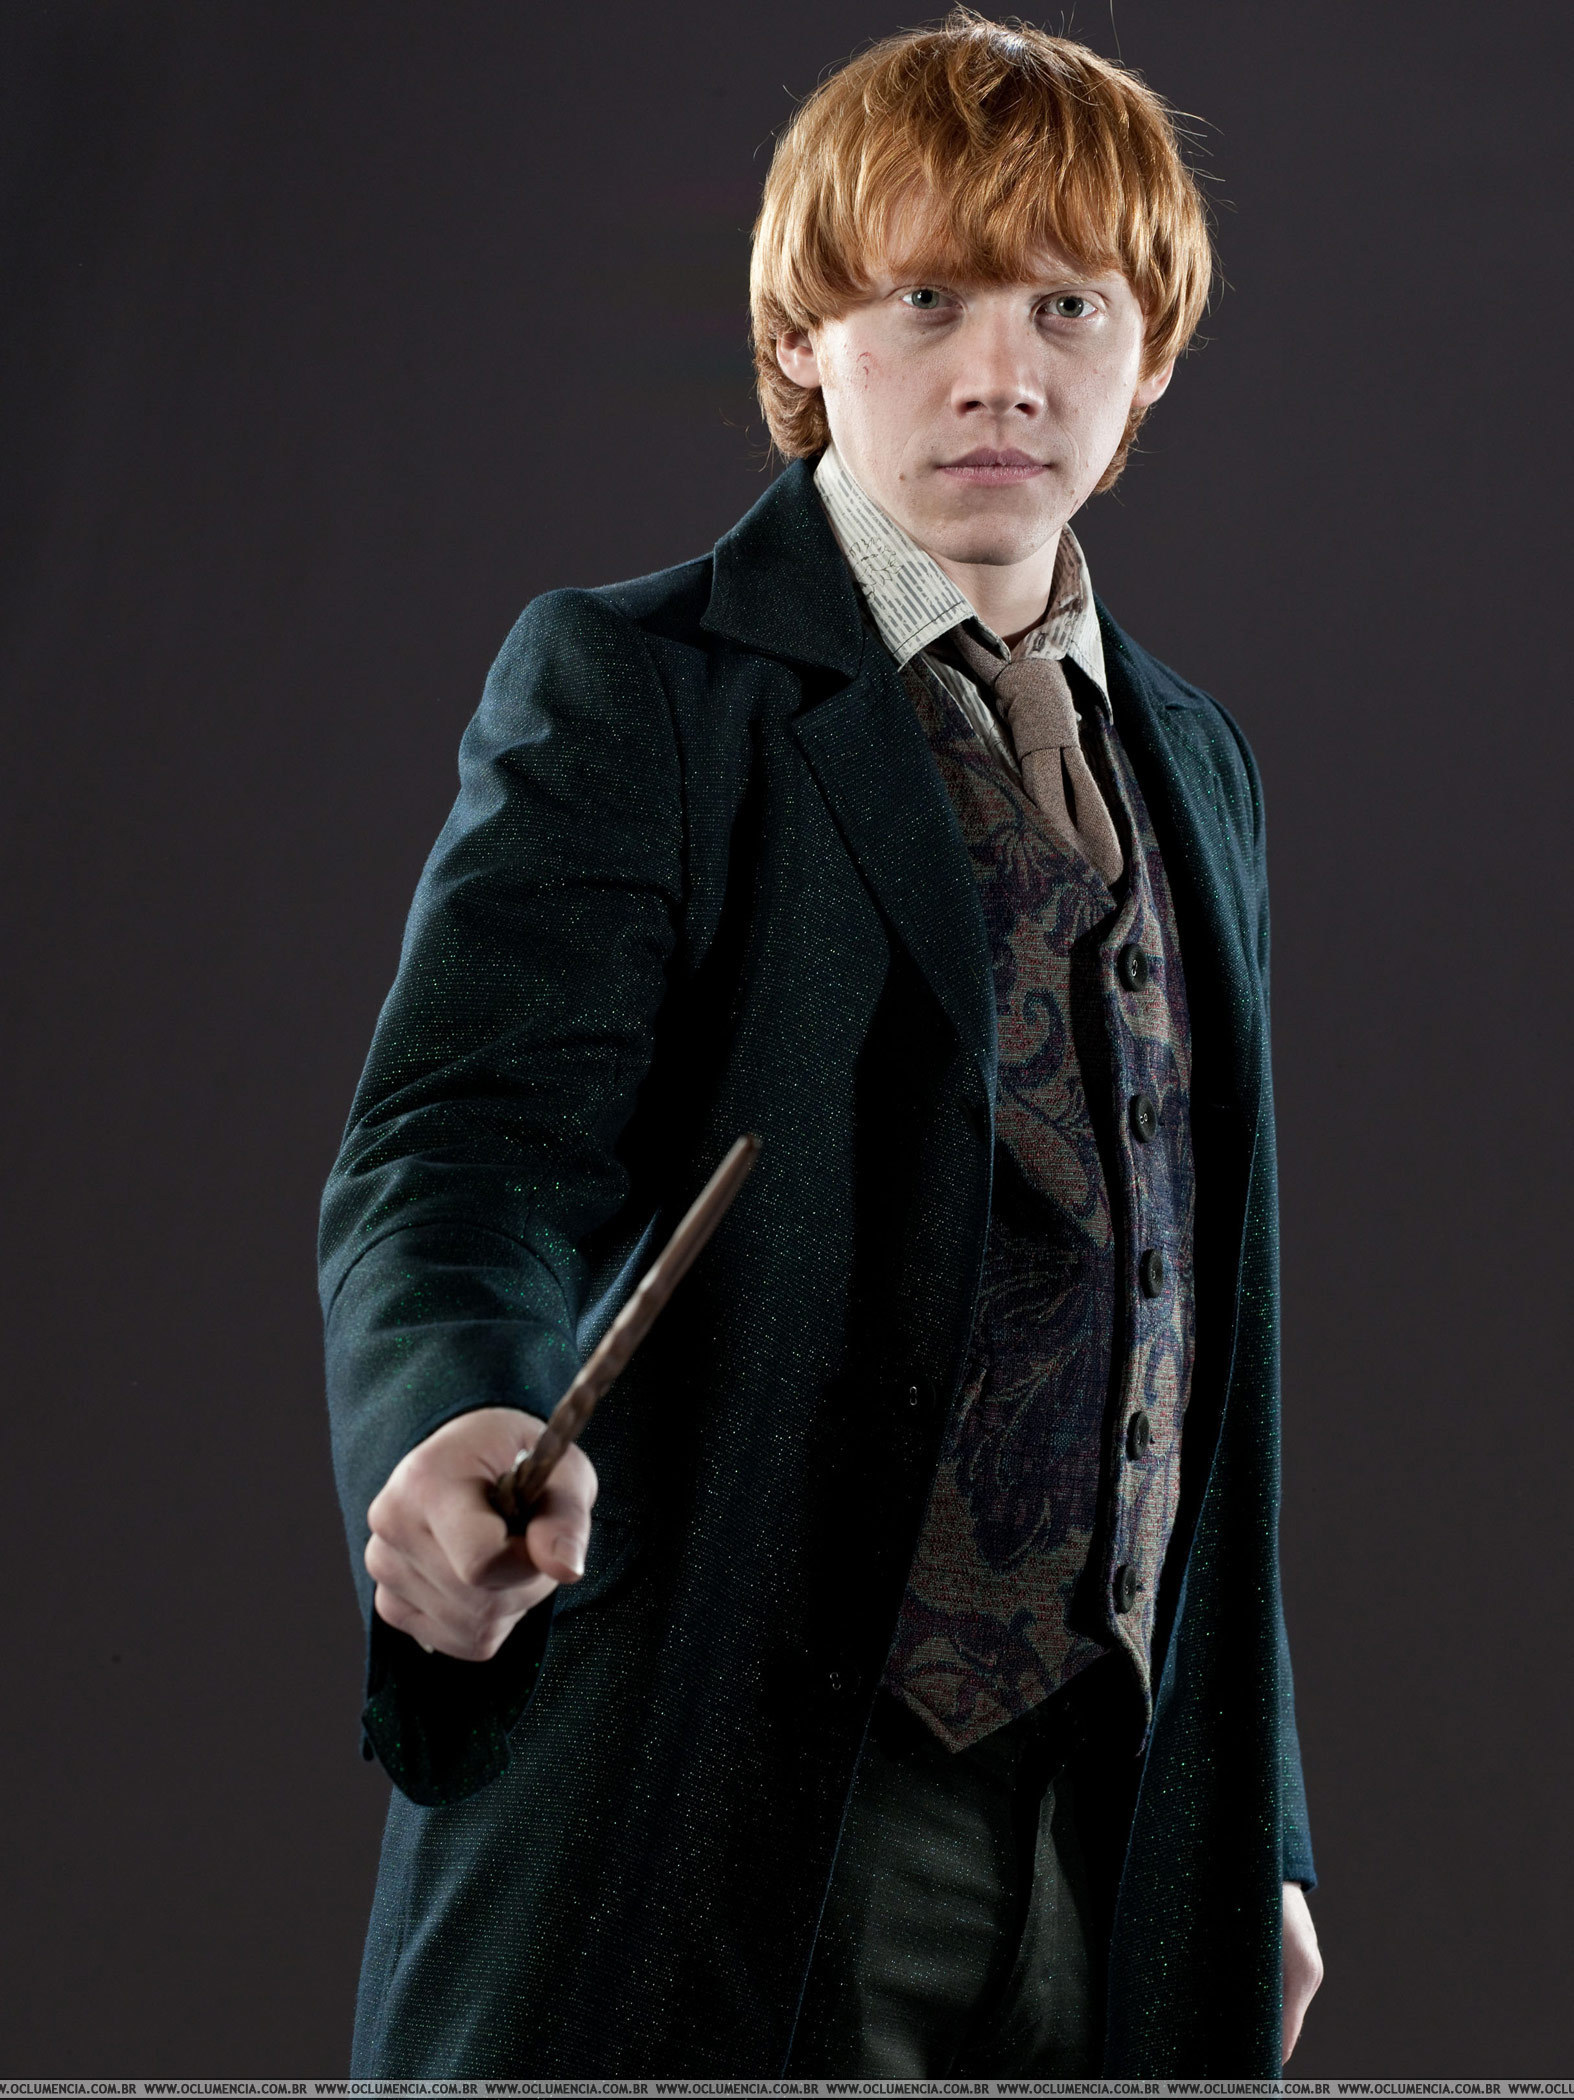 Ronald weasley dh promo pics